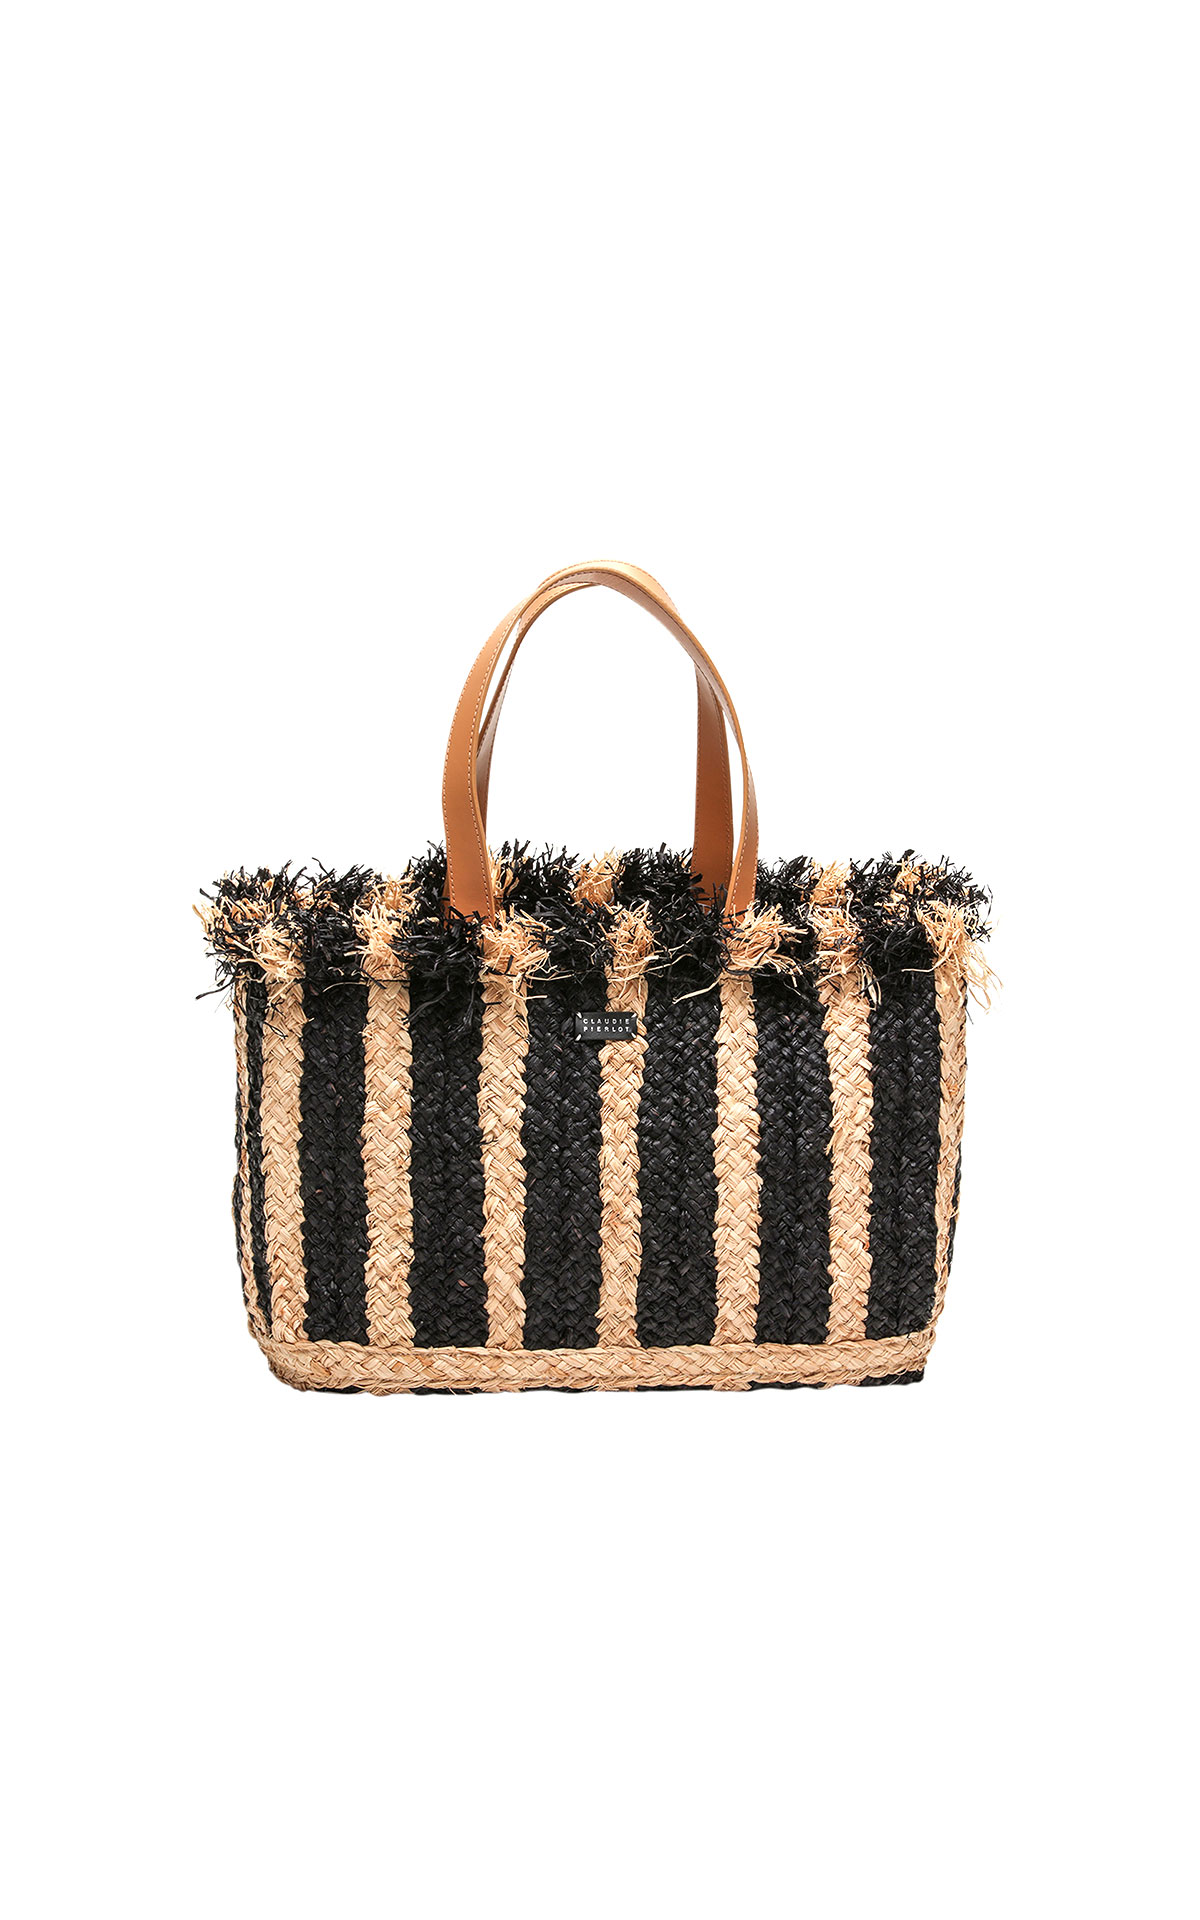 Claudie Pierlot striped bag at the Bicester Village Shopping Collection